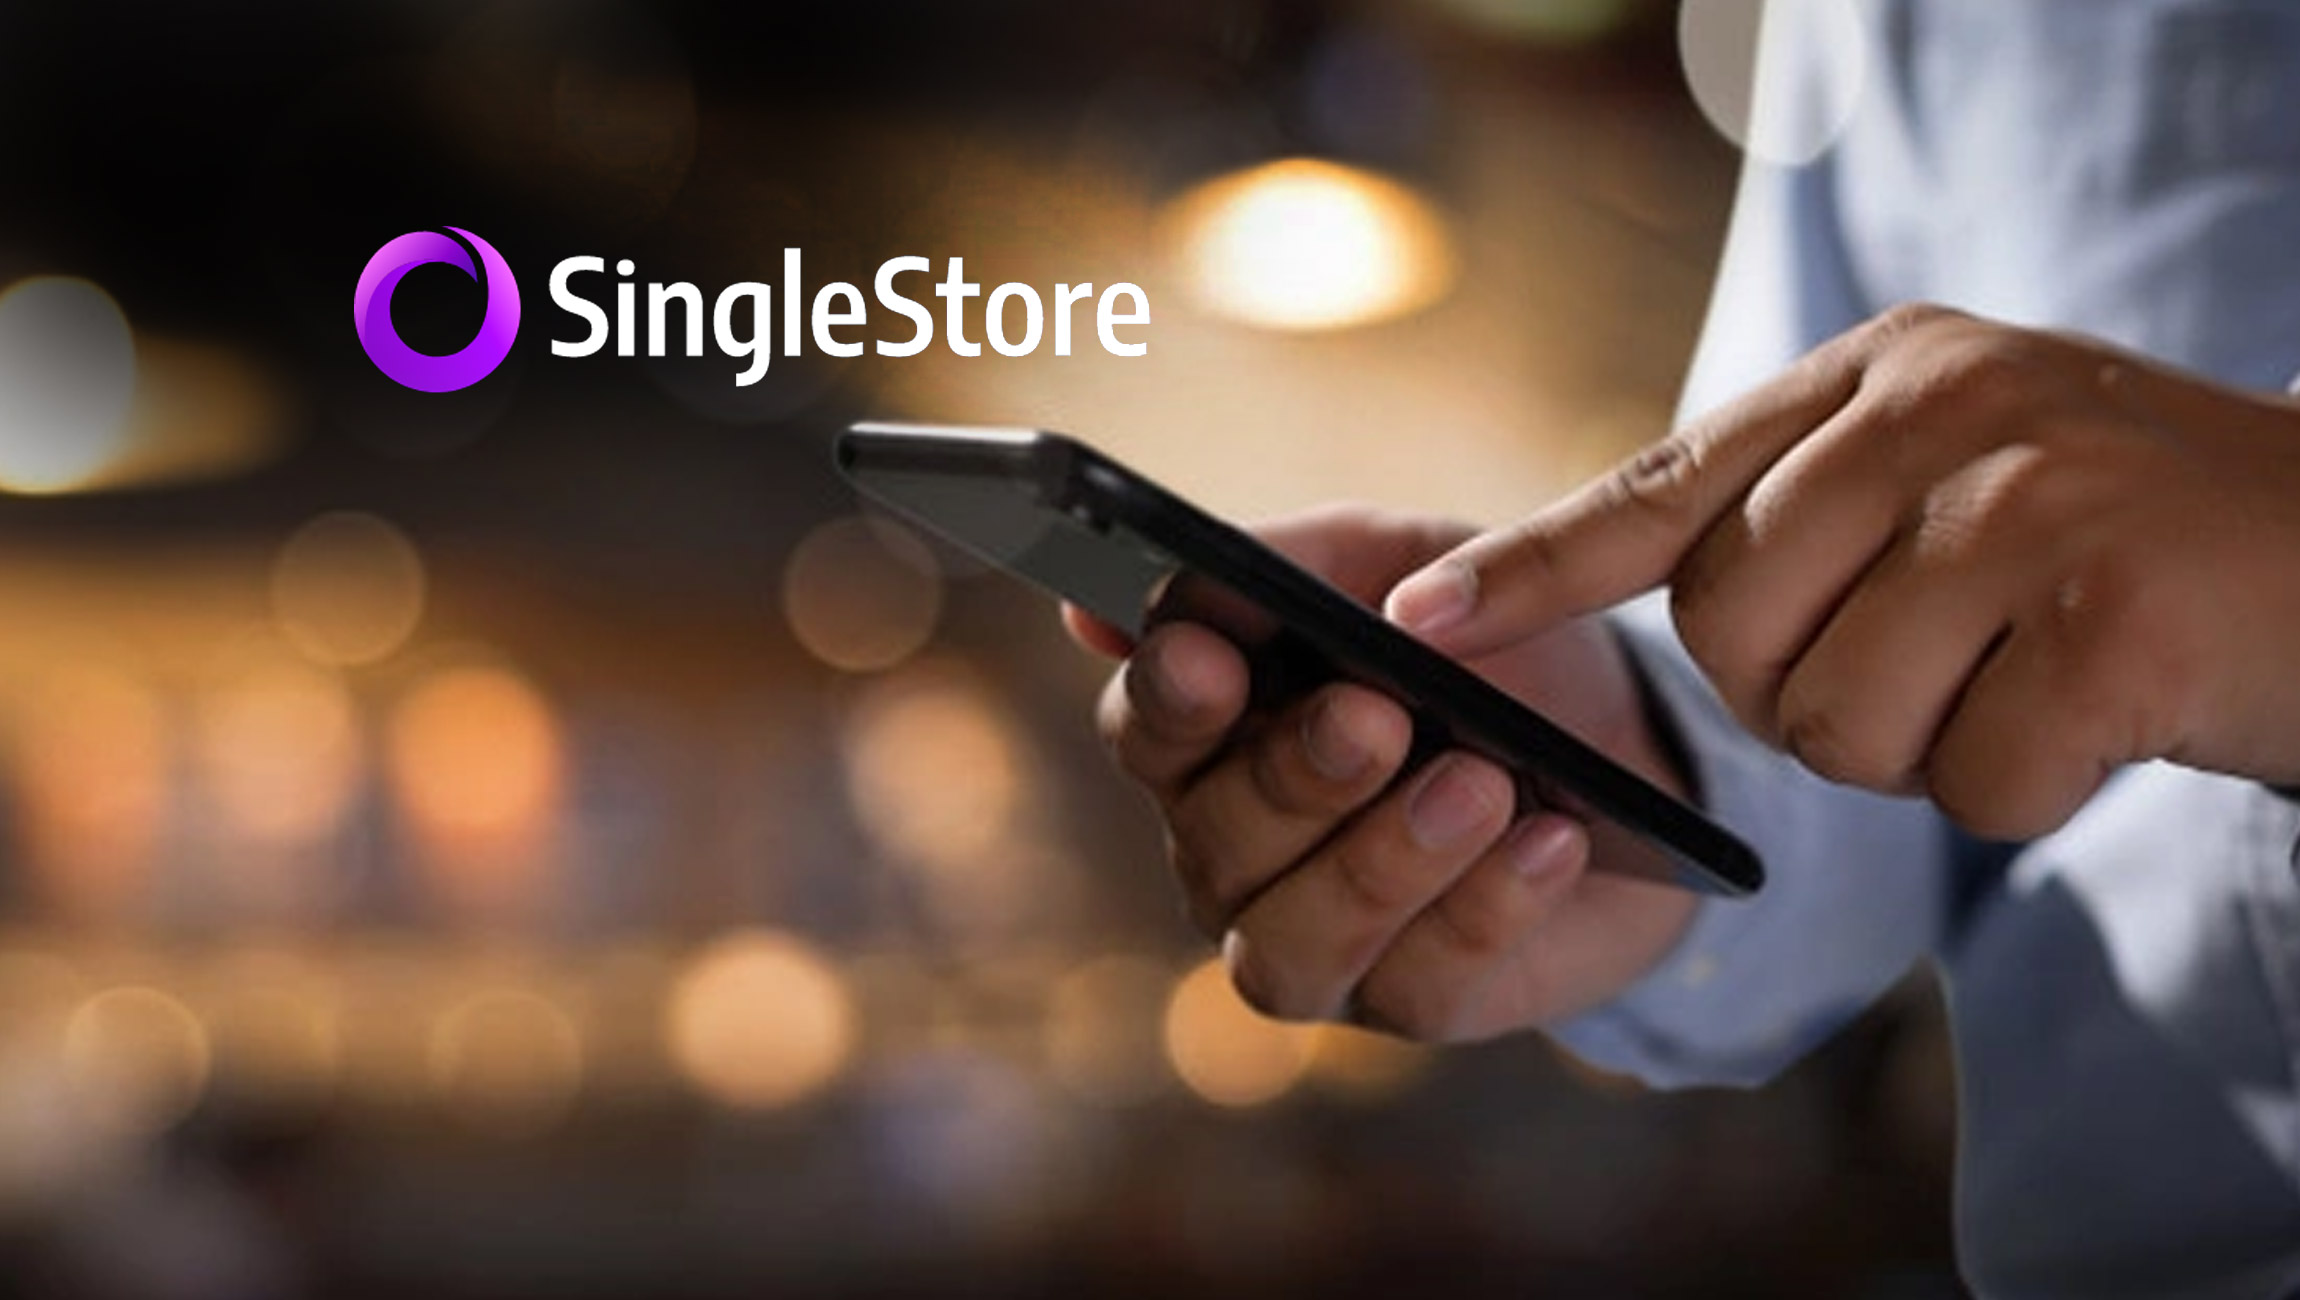 For the Second Consecutive Year, SingleStore Earns a Spot on the Inc. 5000 Ranking of Fastest-Growing Companies